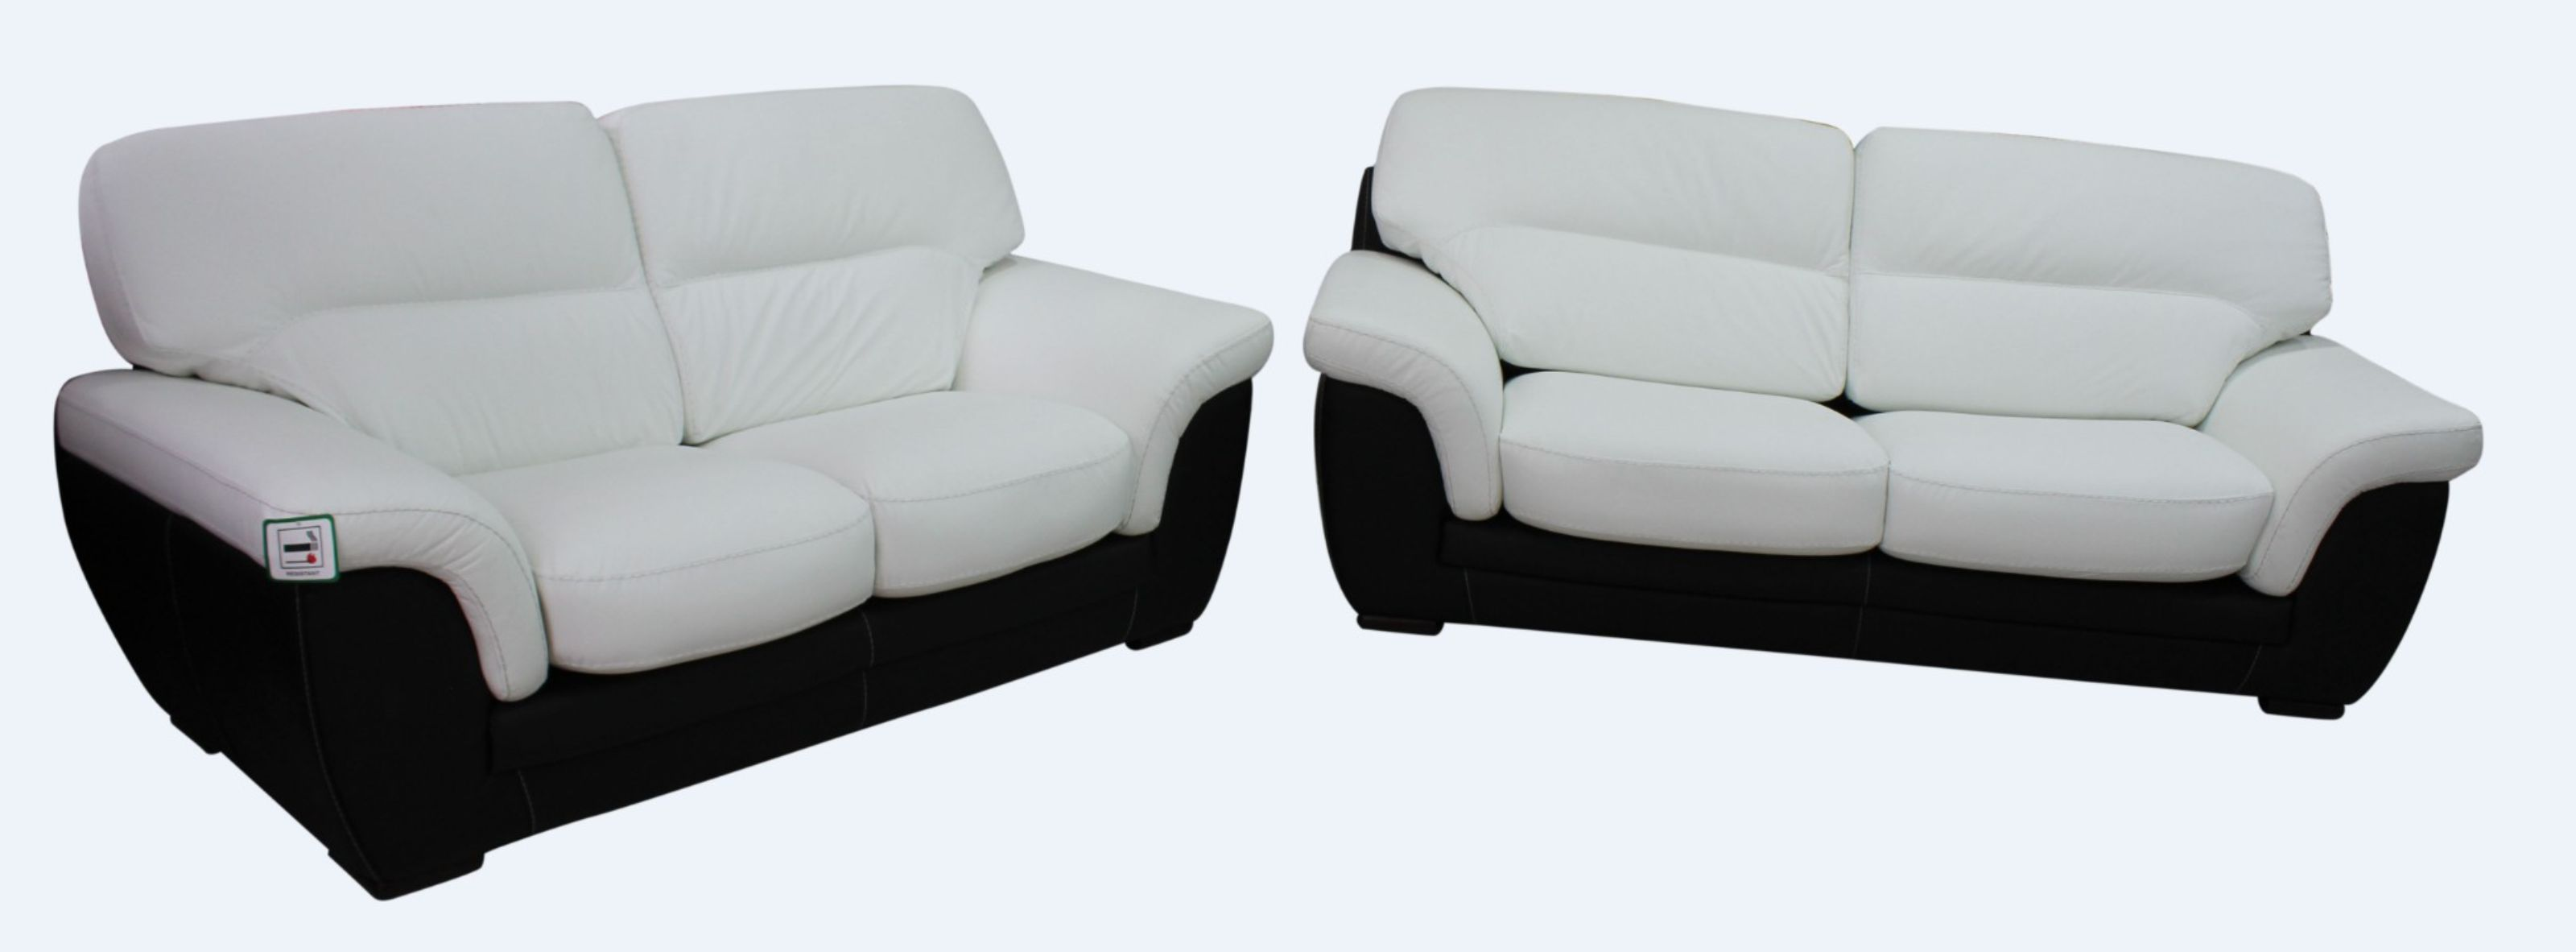 Daniel 3 2 Contemporary Italian Leather Sofa Suite Black White